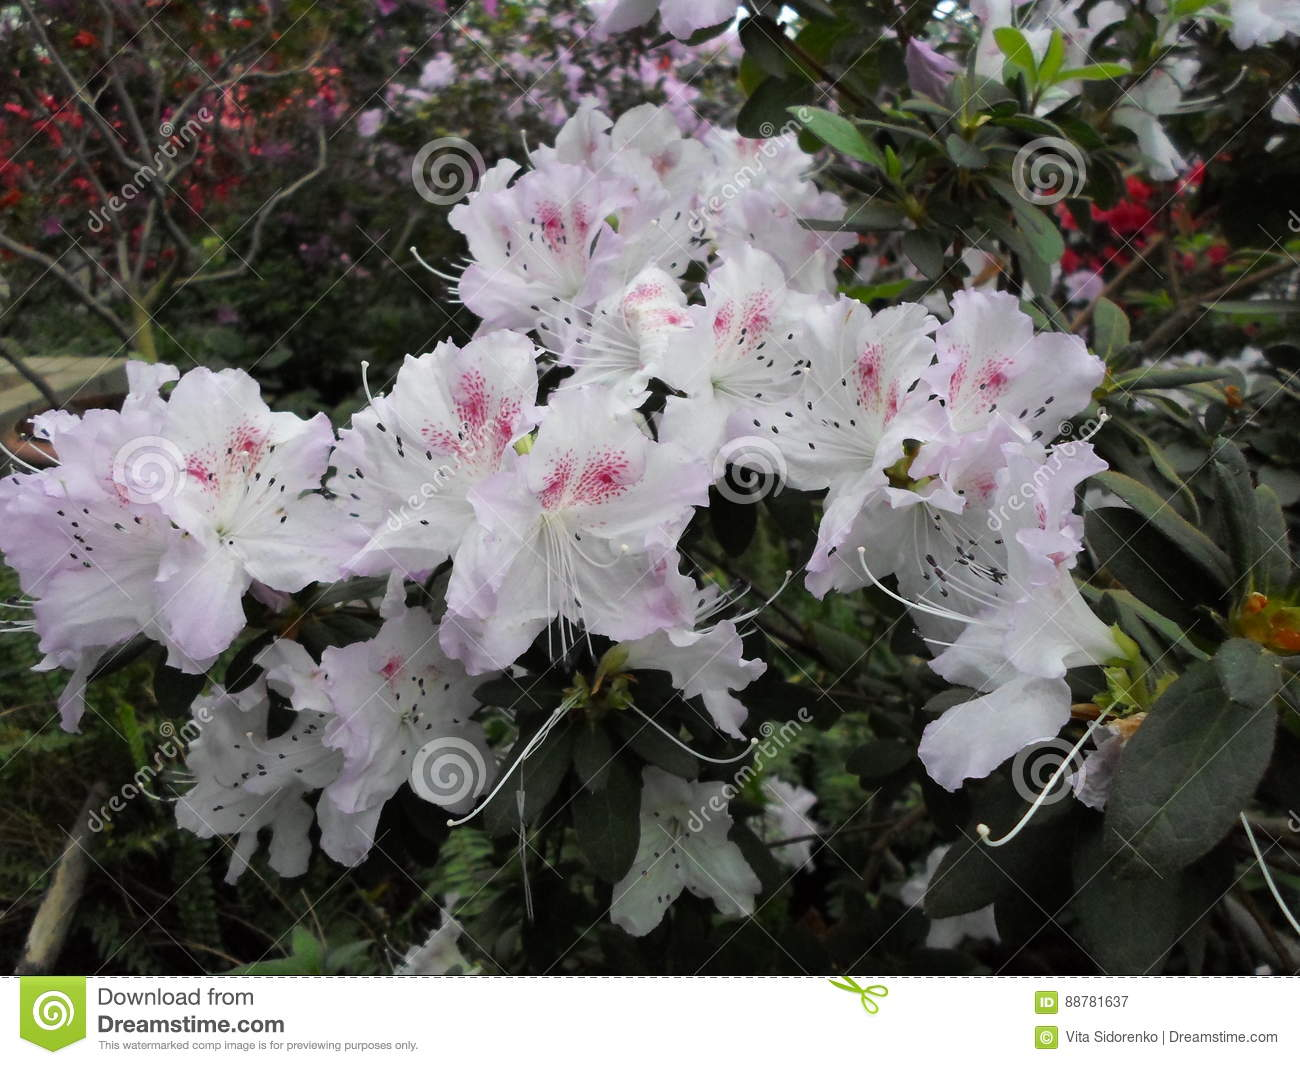 White flowers flowers blooming tree in the spring white flowers download white flowers flowers blooming tree in the spring white flowers azaleas mightylinksfo